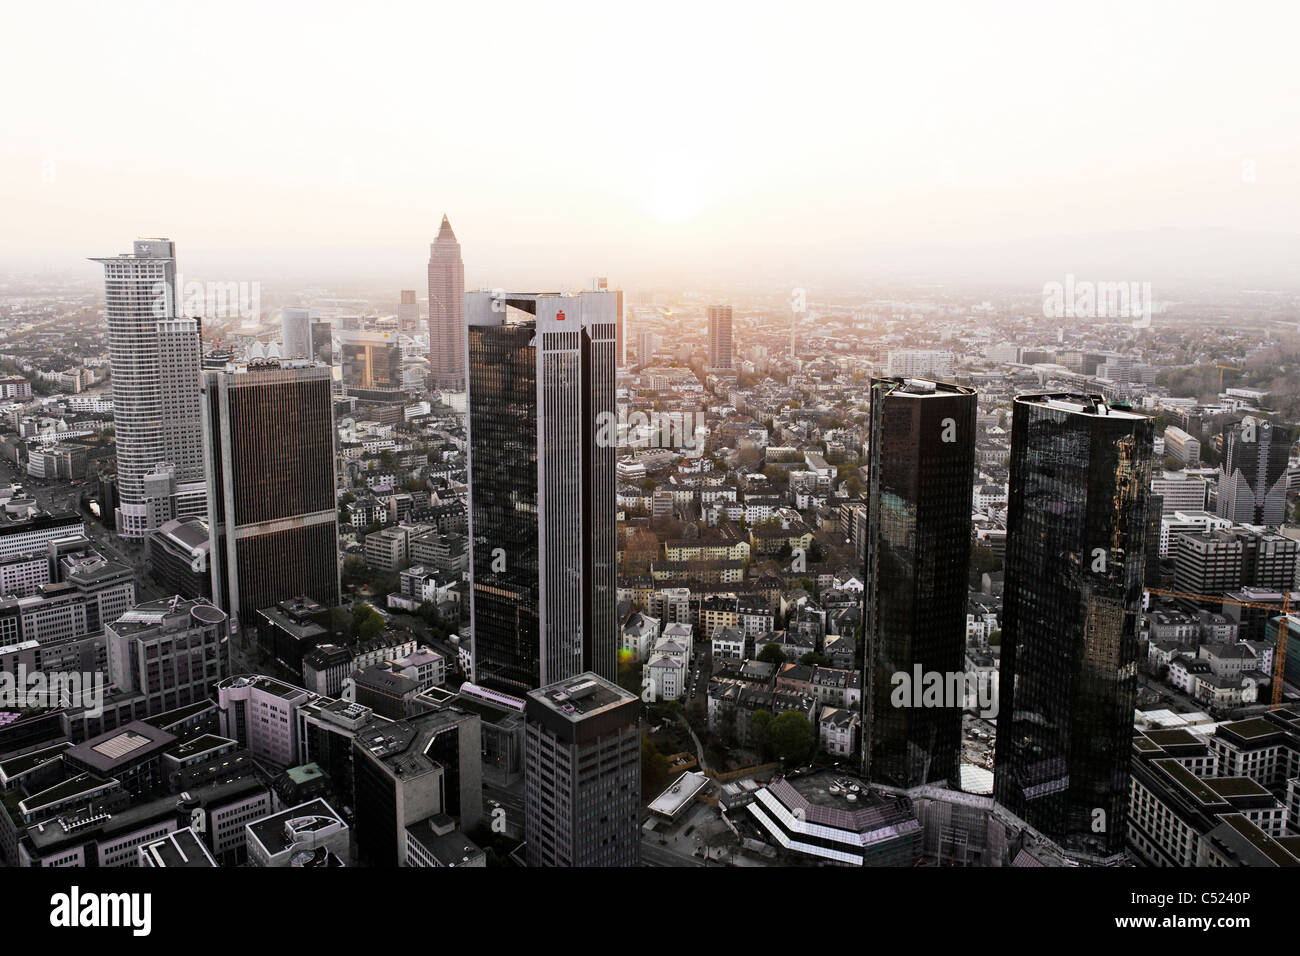 Panorama, financial district, creative, urban, diffuse light, Frankfurt am Main, Hesse, Germany, Europe - Stock Image